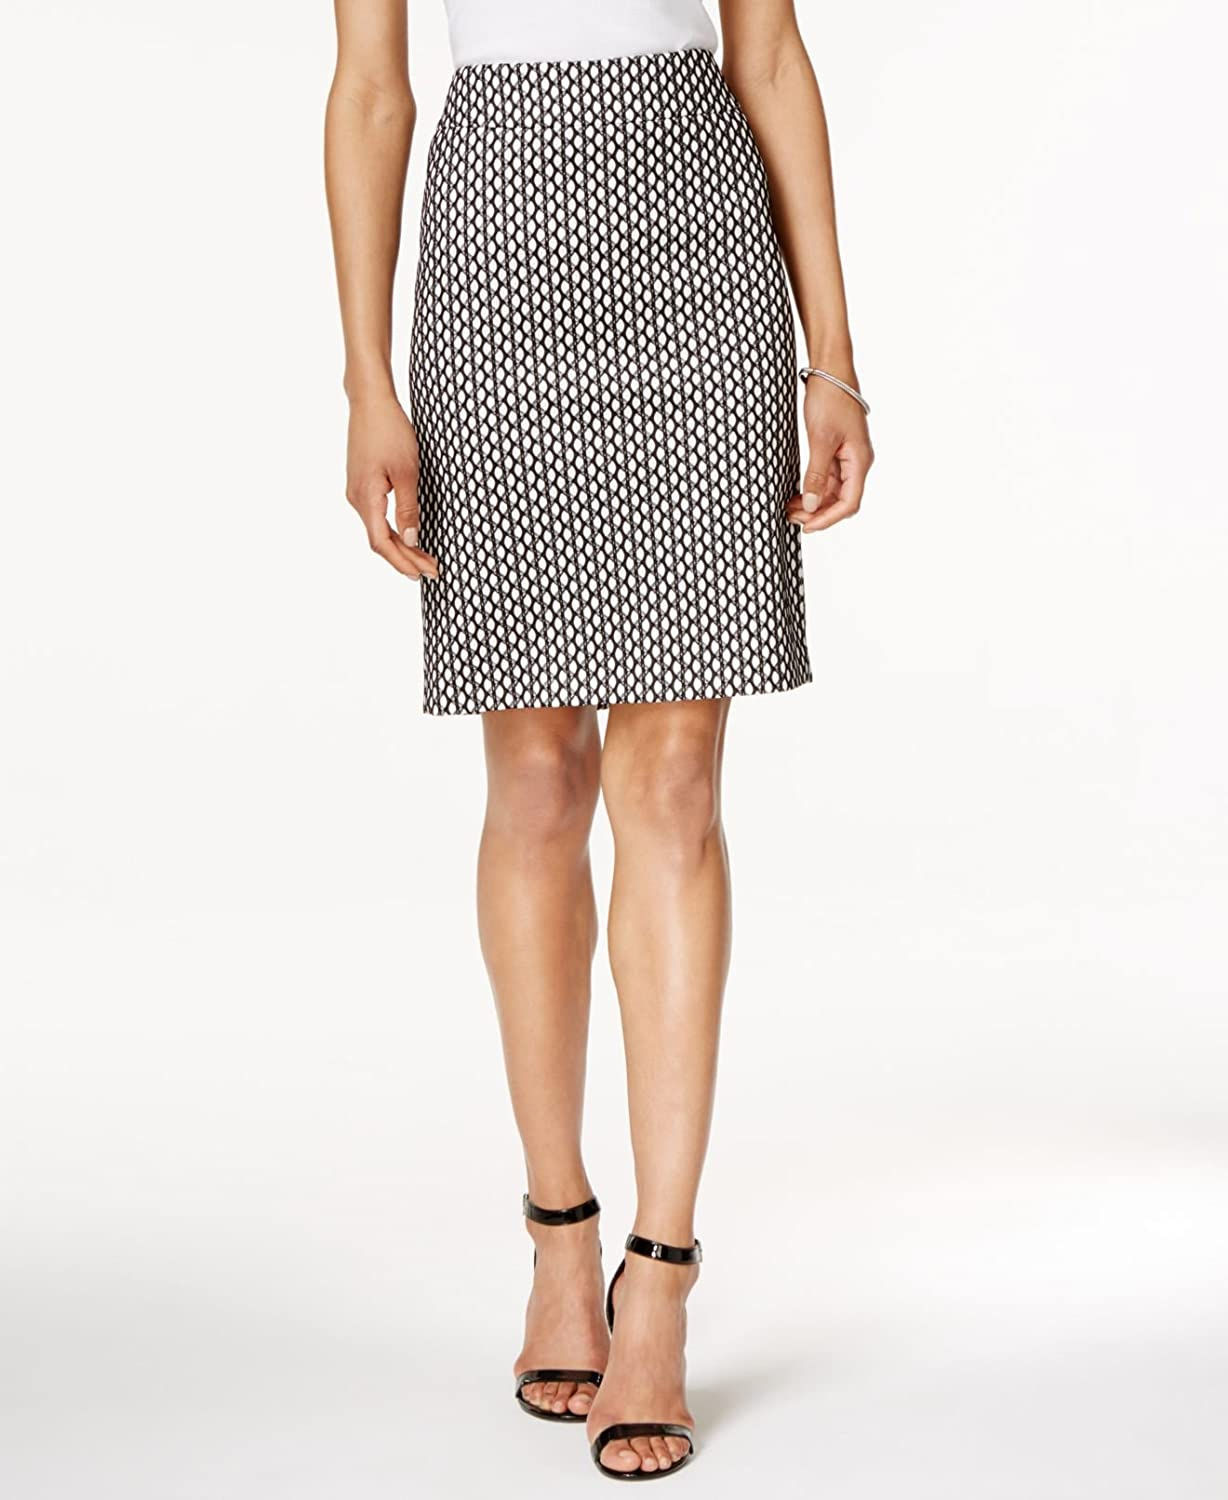 Nine West Womens Bonded Lace Straight Skirt Nine West Women/'s Suits 10615722-0DC